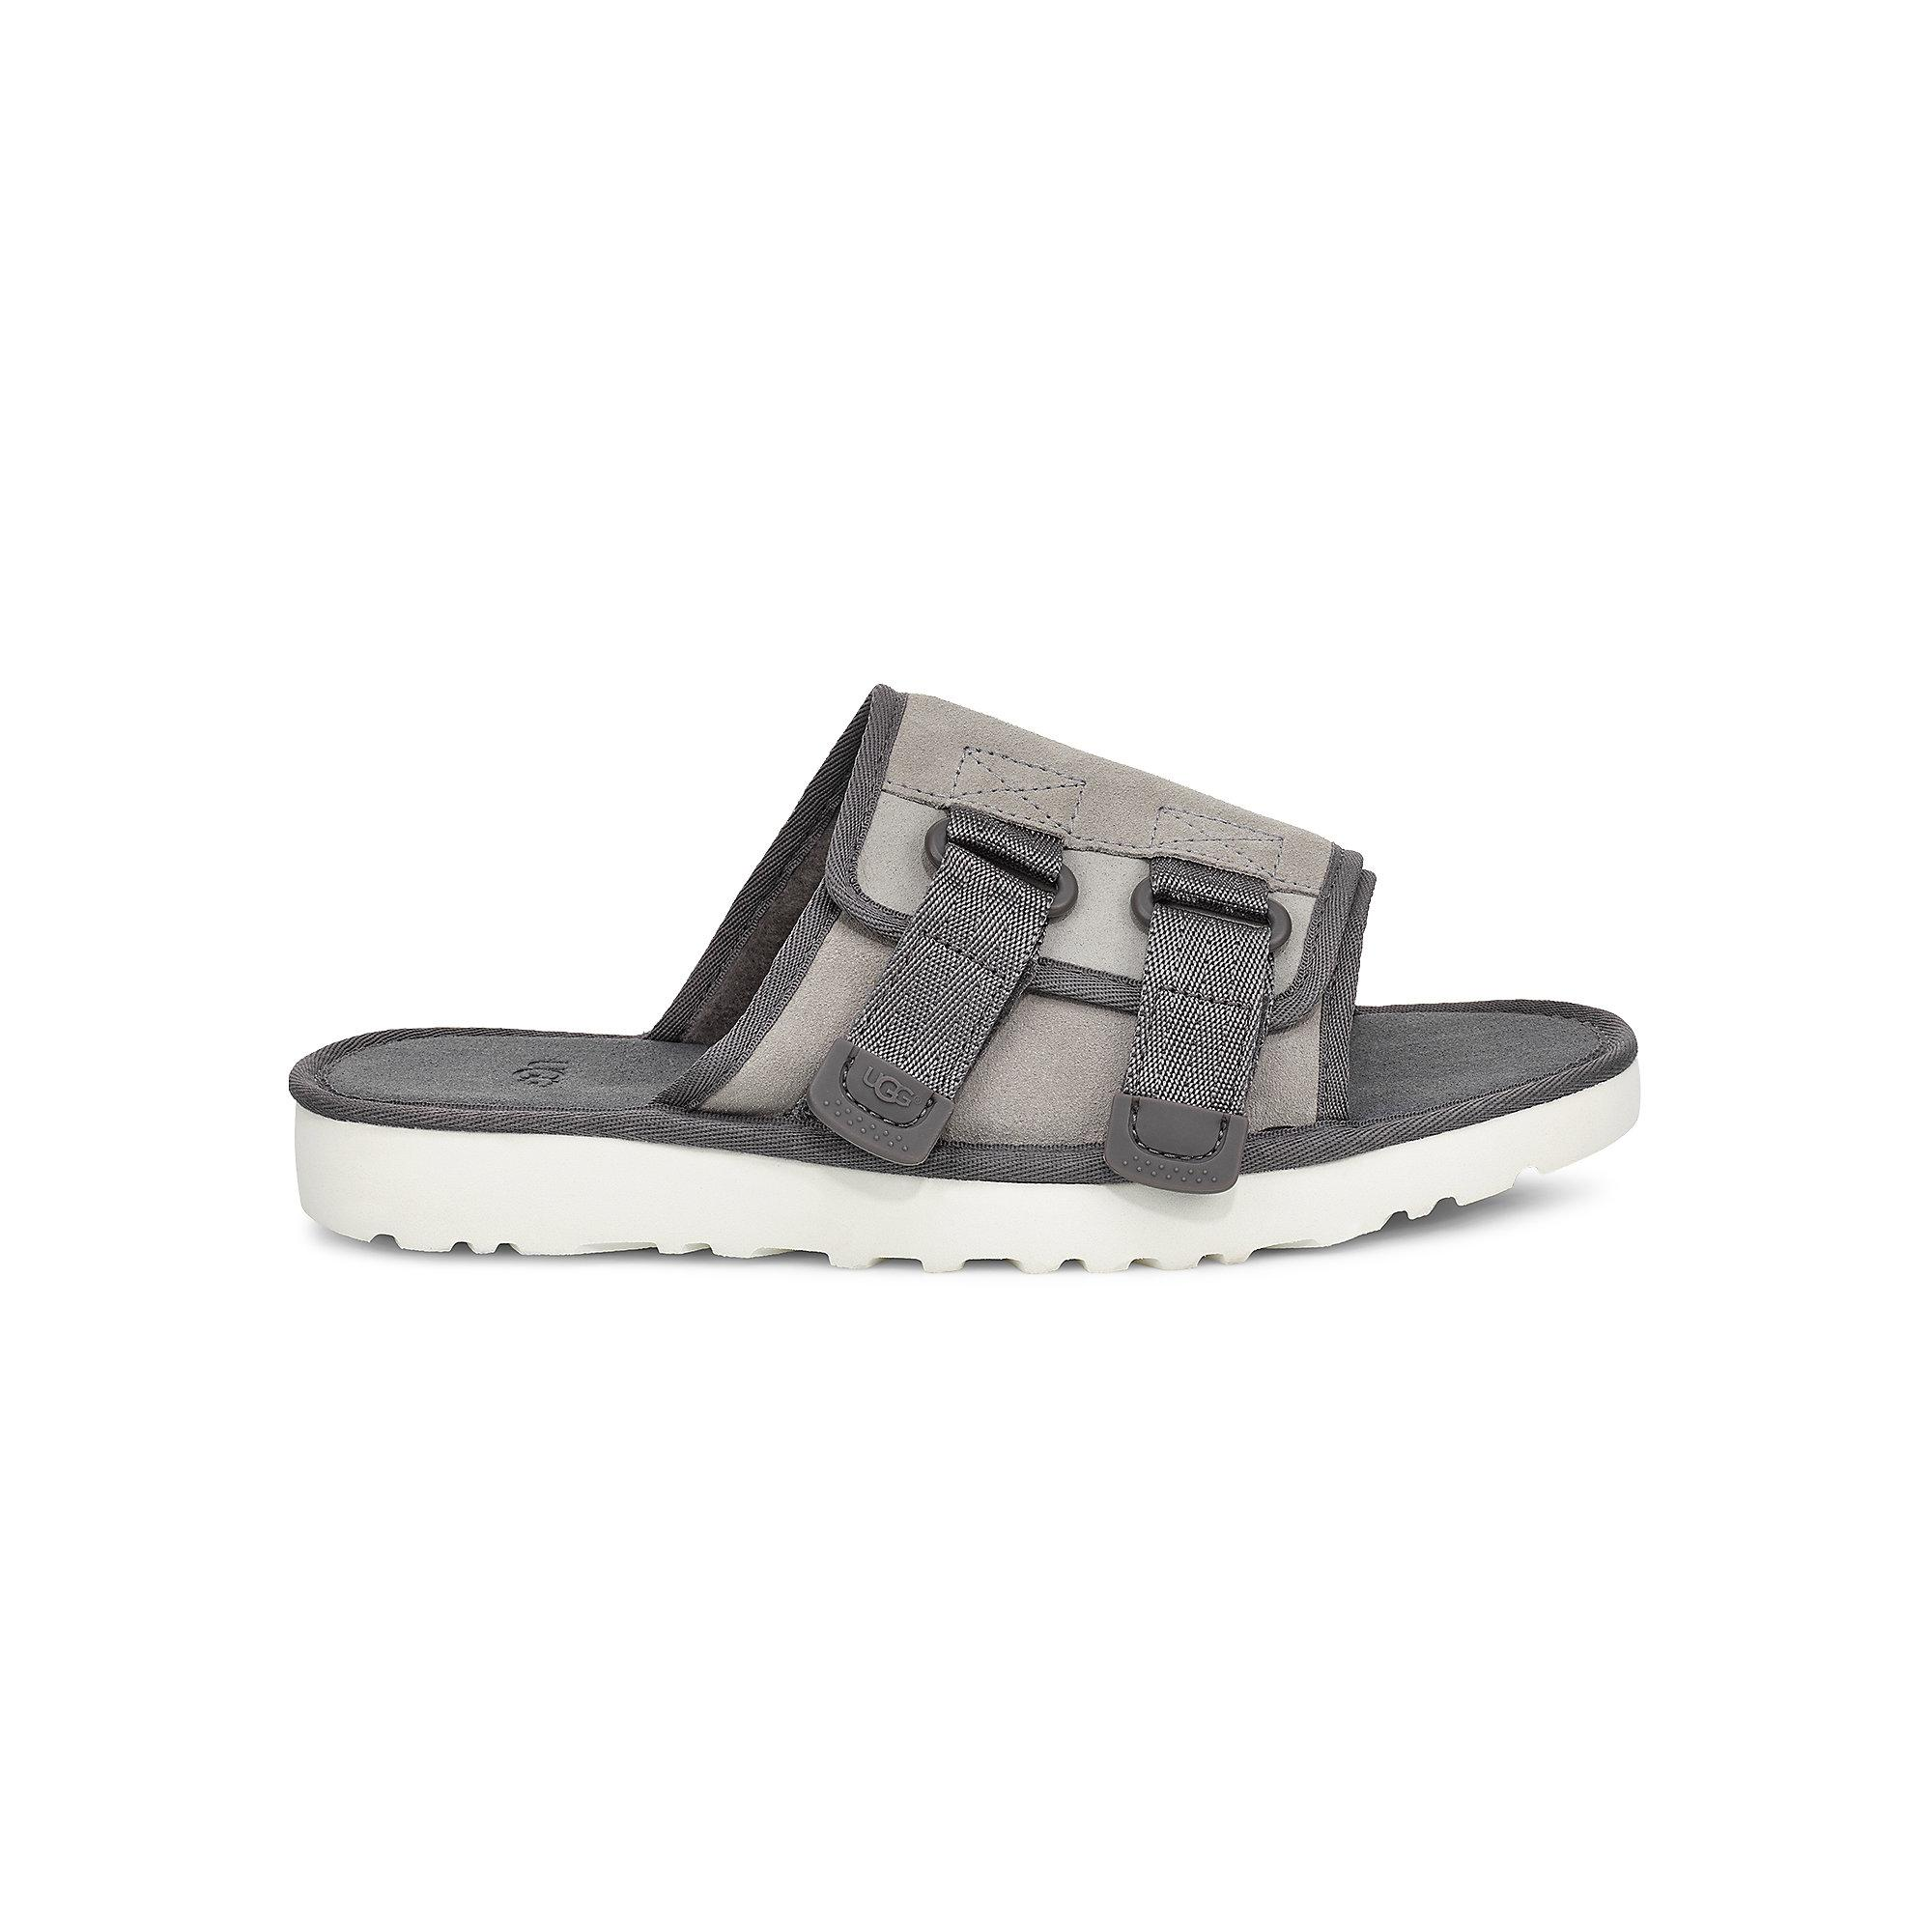 6e04b2eb4b2 Gray Men's Dune Slide